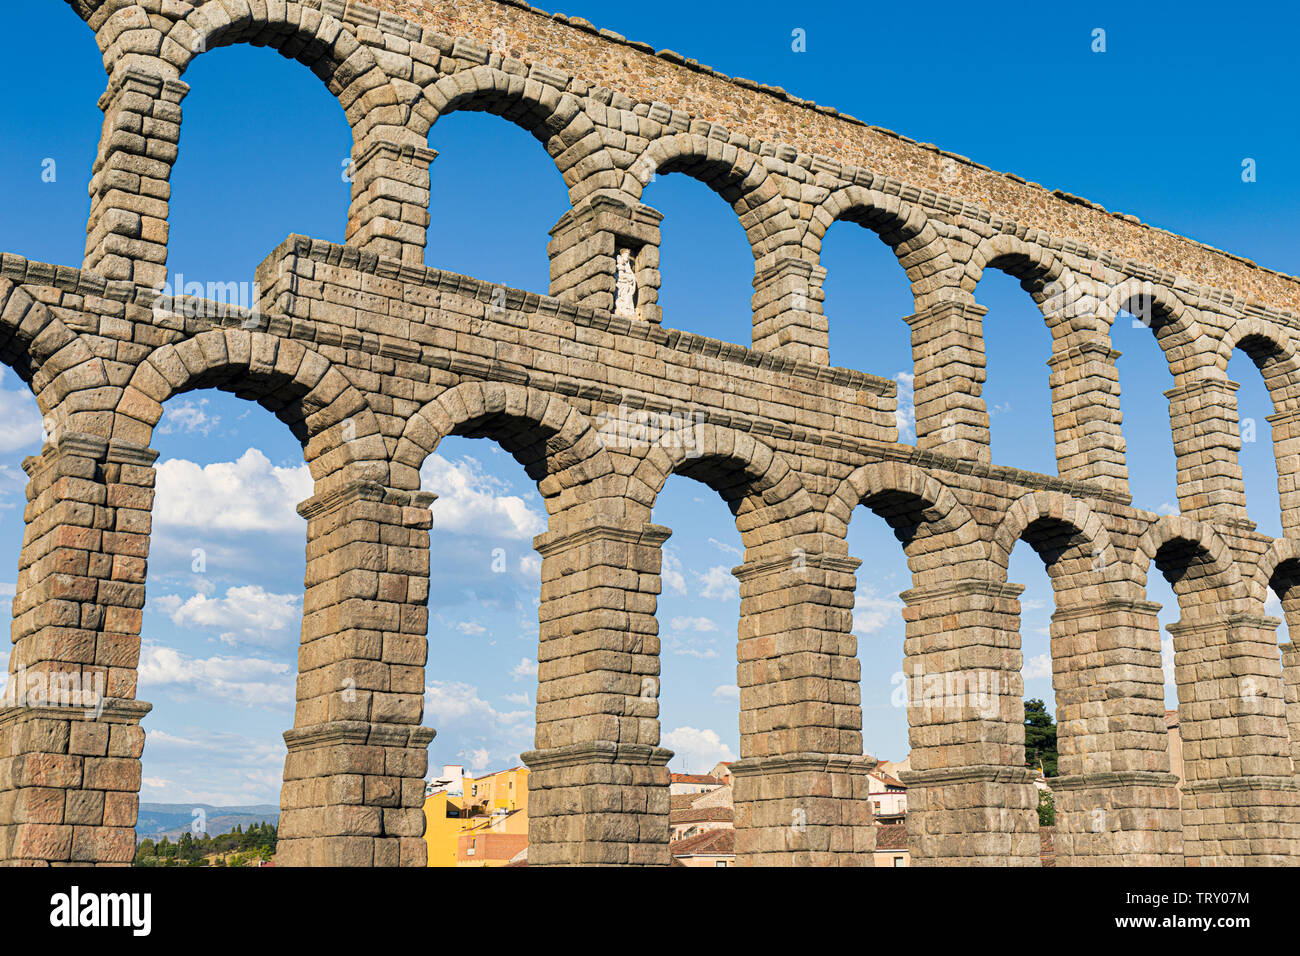 Segovia, Segovia Province, Castile and Leon, Spain.  The Roman Aqueduct in Plaza del Azoguejo which dates from the 1st or 2nd century AD.  The Old Tow - Stock Image